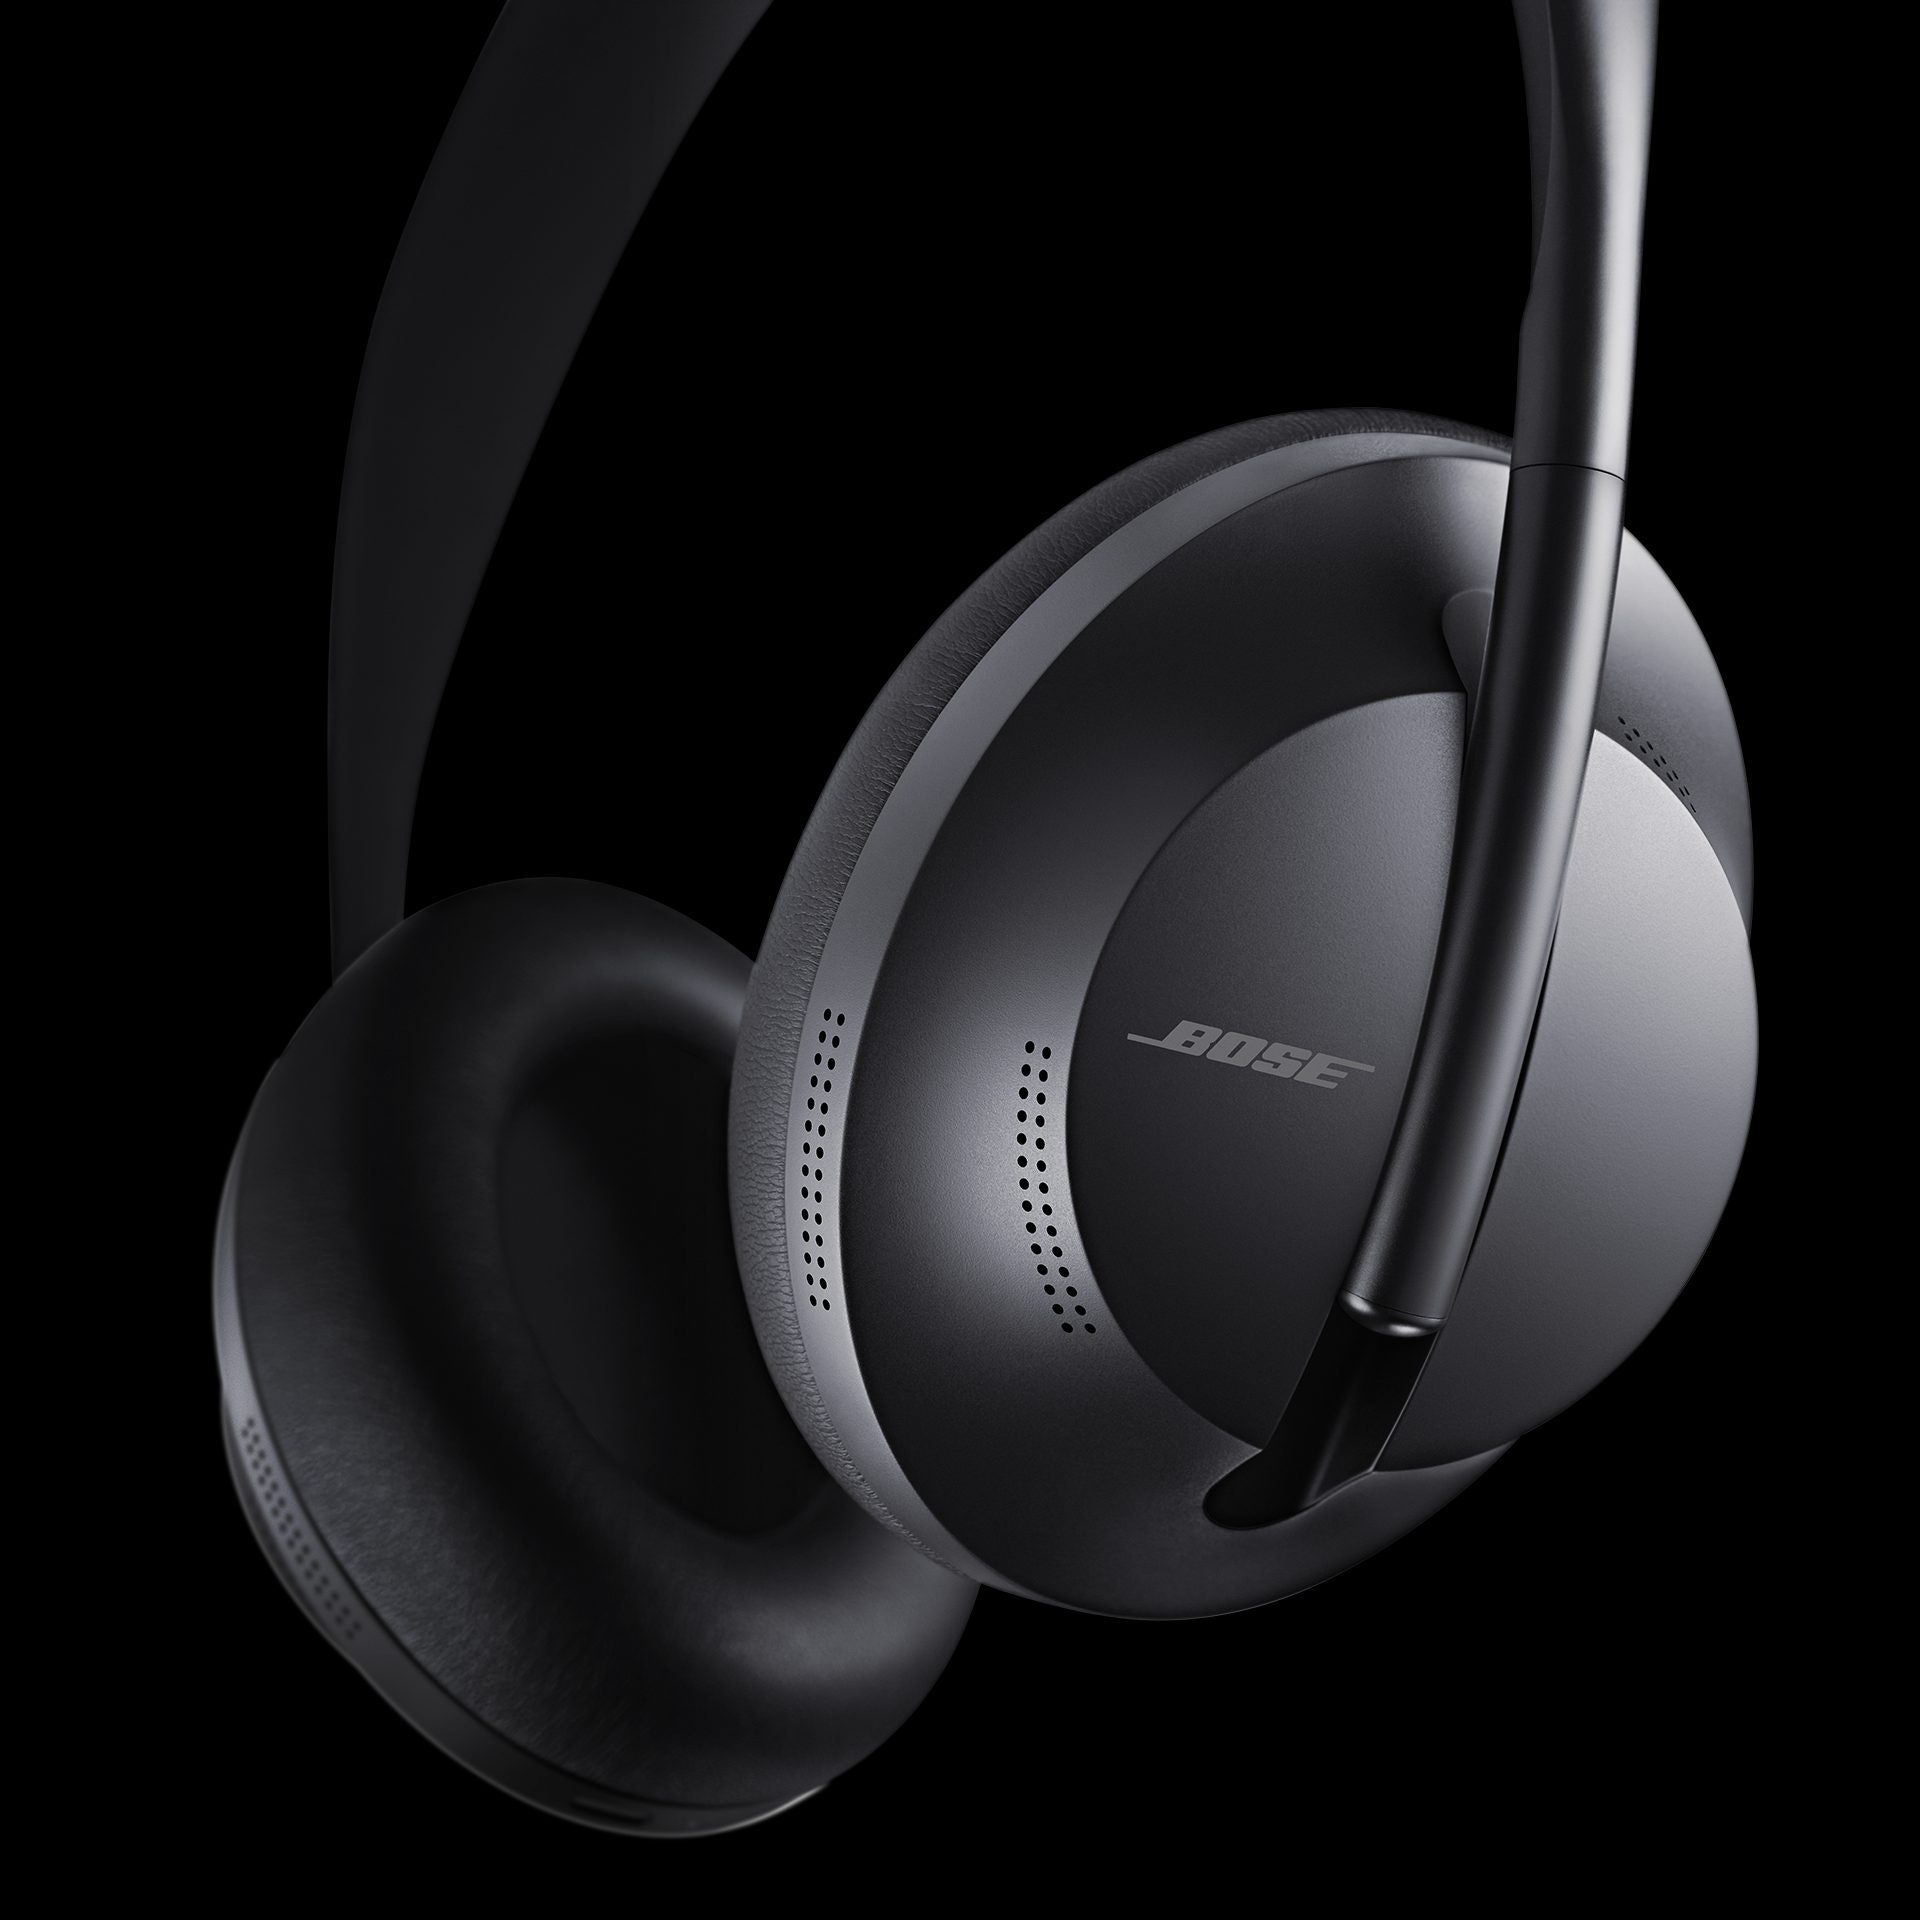 3720c0c7d03 Bose Headphones 700 - The evolution of the Bose QC 35 IIs 🎧 | Product Hunt